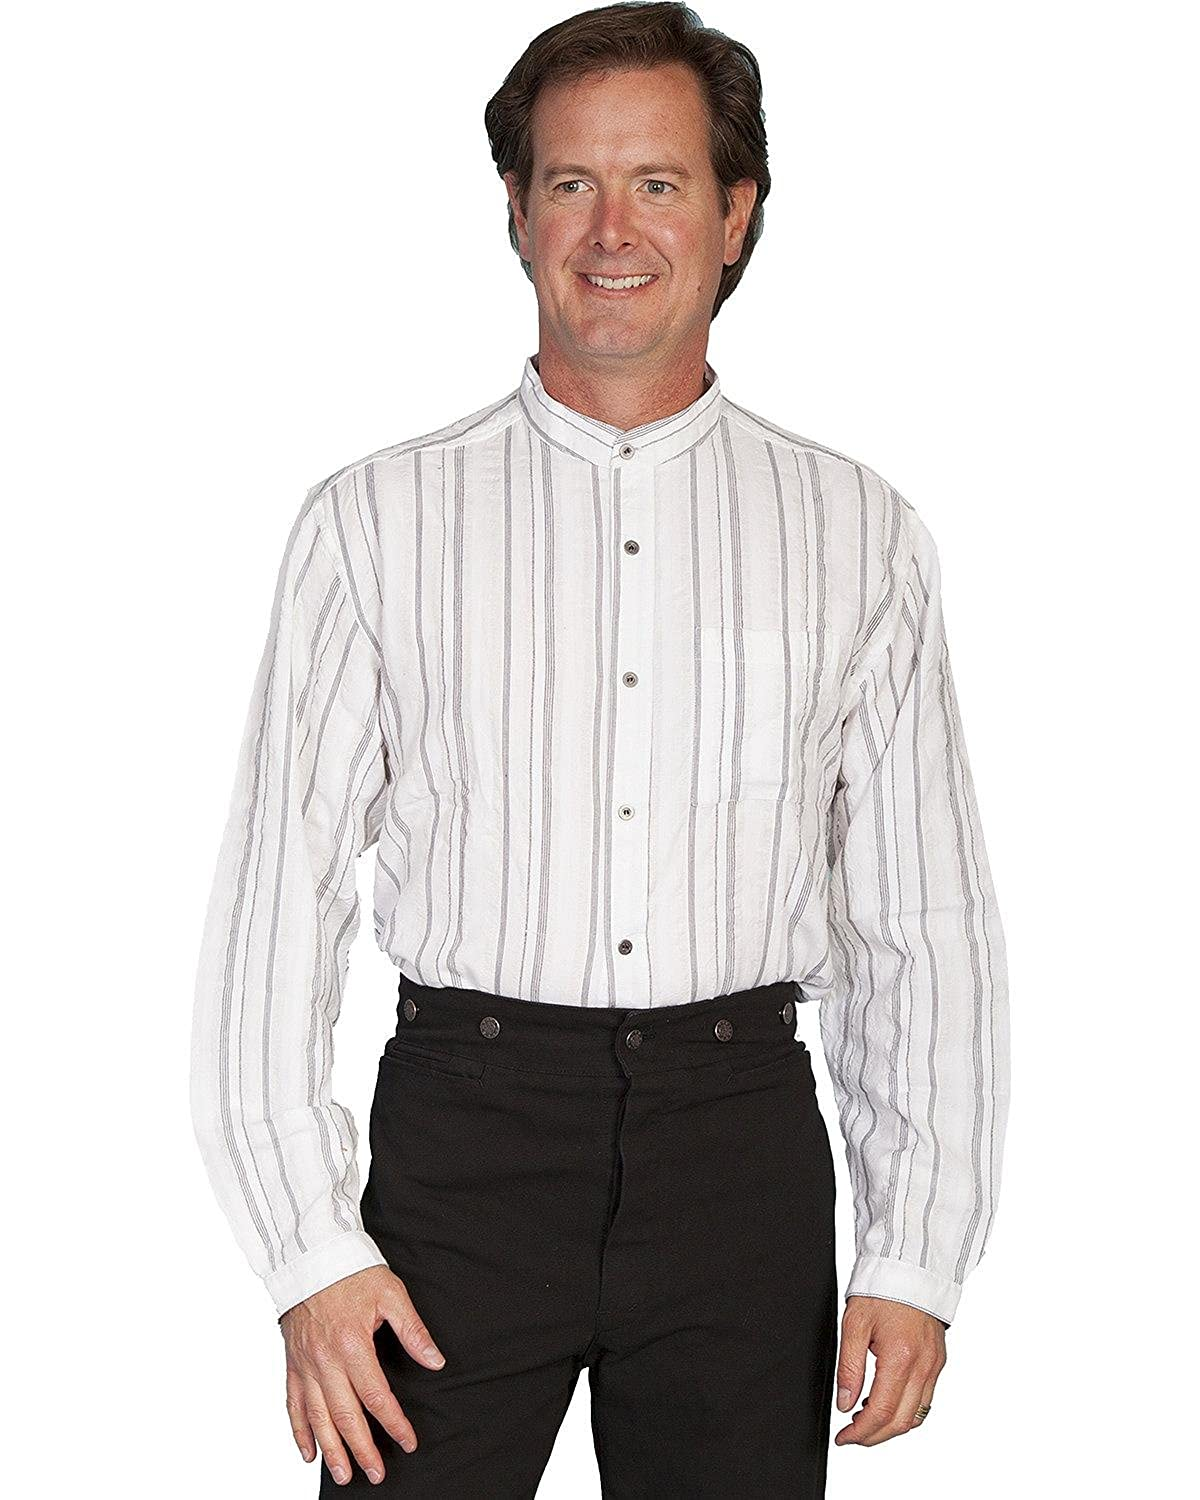 Edwardian Men's Fashion & Clothing Scully One of Our Best Selling Shirts - White $49.99 AT vintagedancer.com